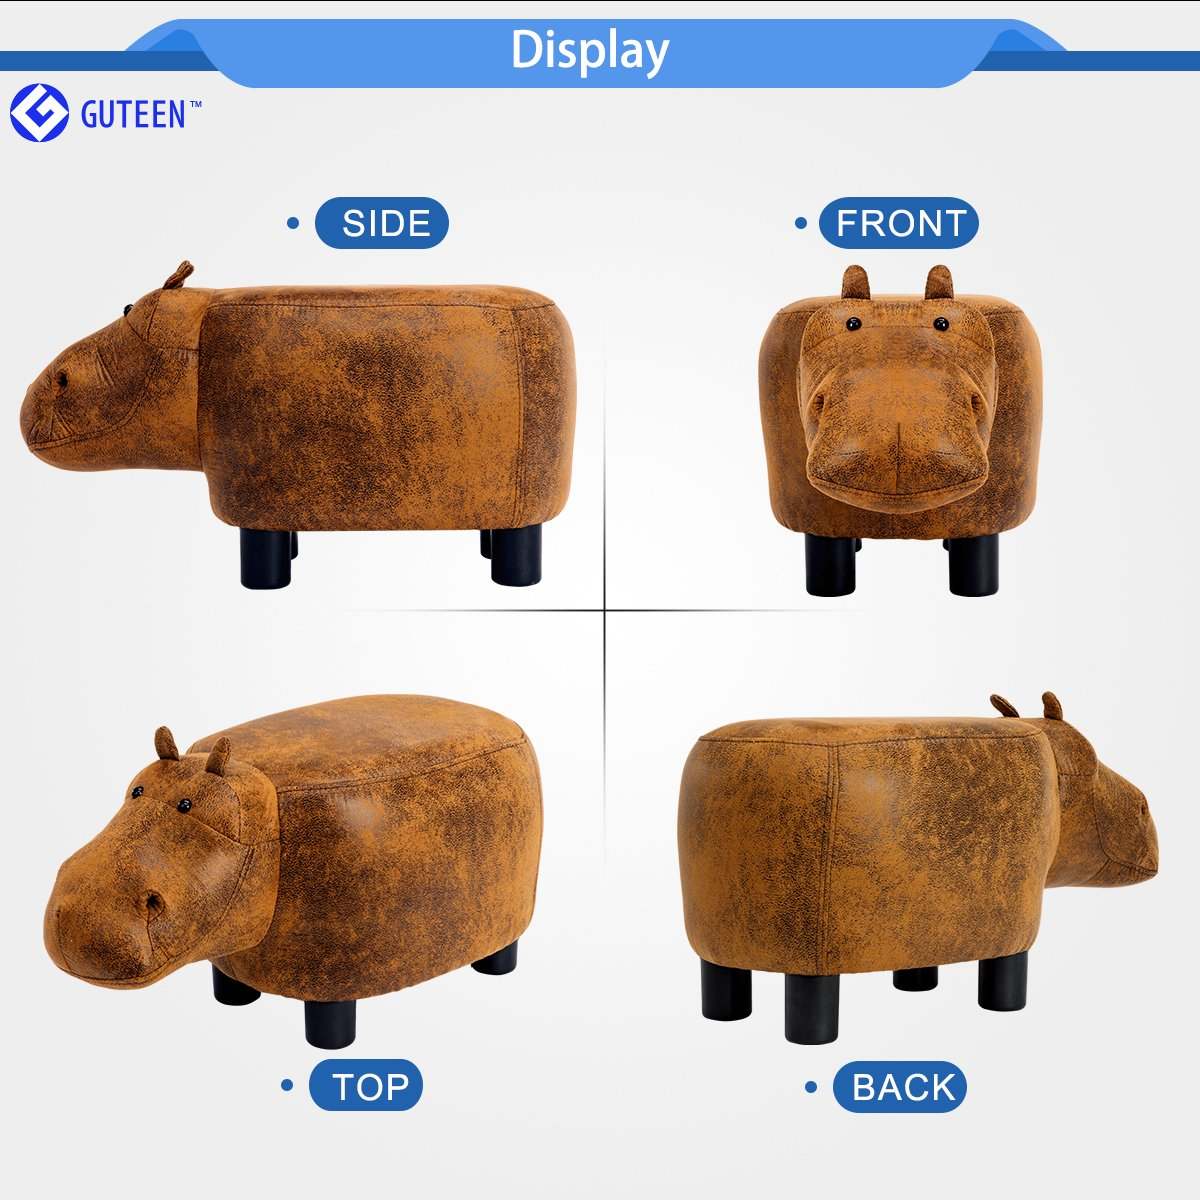 Guteen Upholstered Ride-on Toy Seat Ottoman Footrest Stool with Vivid Adorable Animal-Like Features(Brown Hippo) by GUTEEN (Image #2)